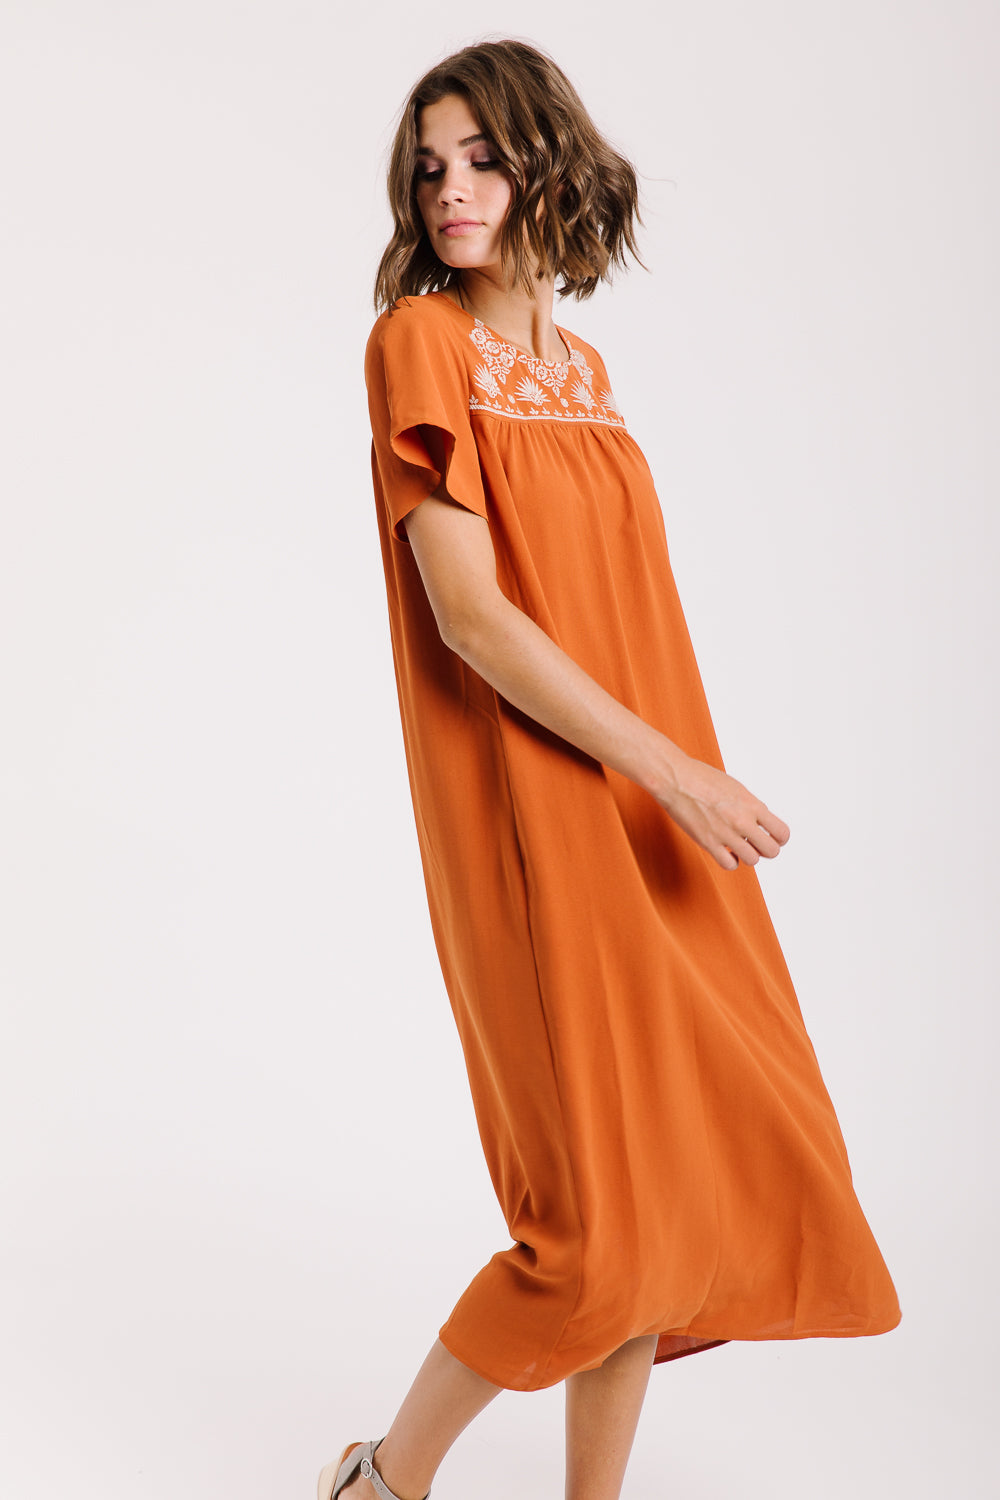 Piper & Scoot: The Hathaway Embroidered Maxi Dress in Rust